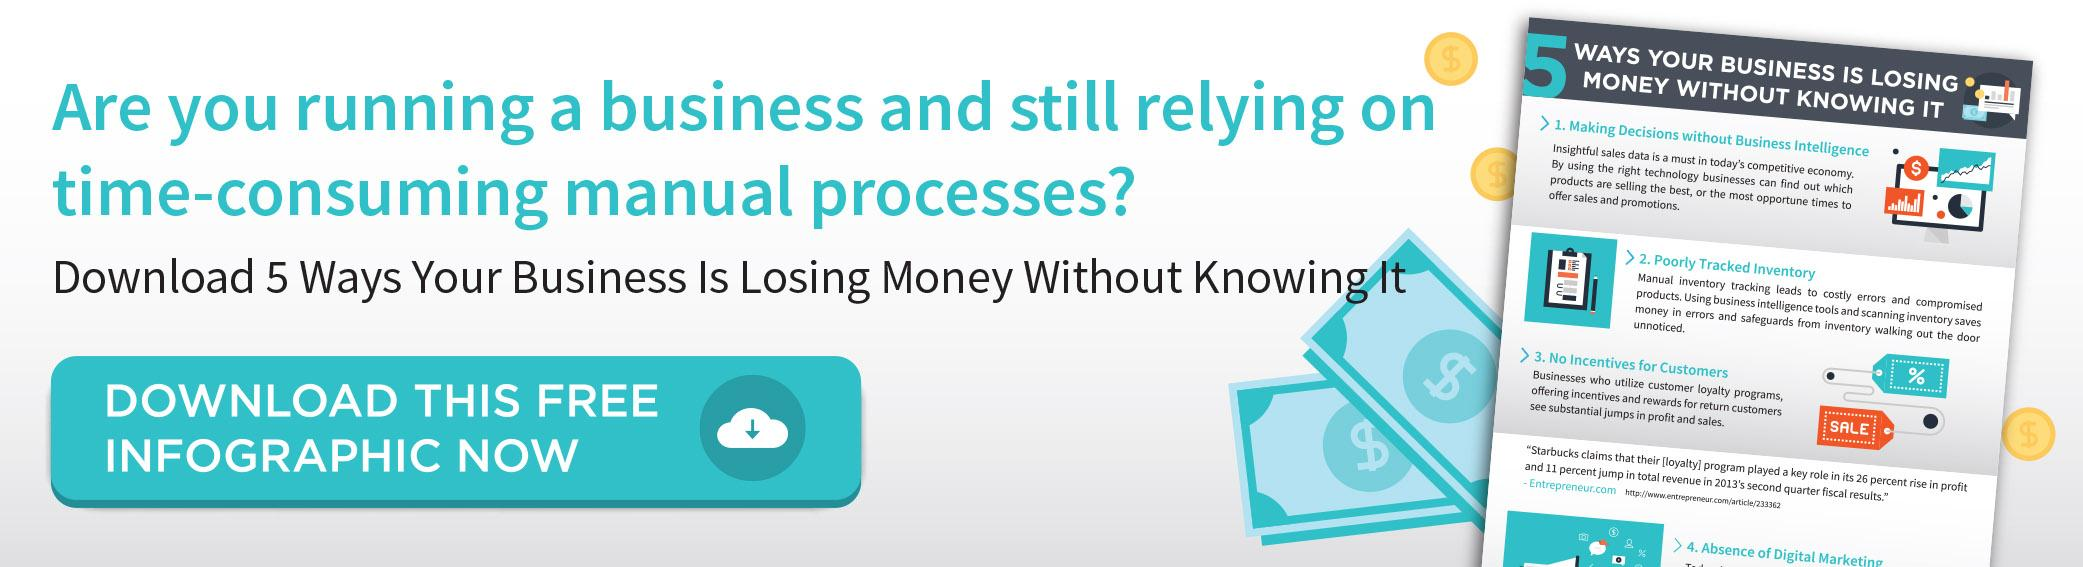 Five Ways Your Business Is Losing Money Without Knowing It